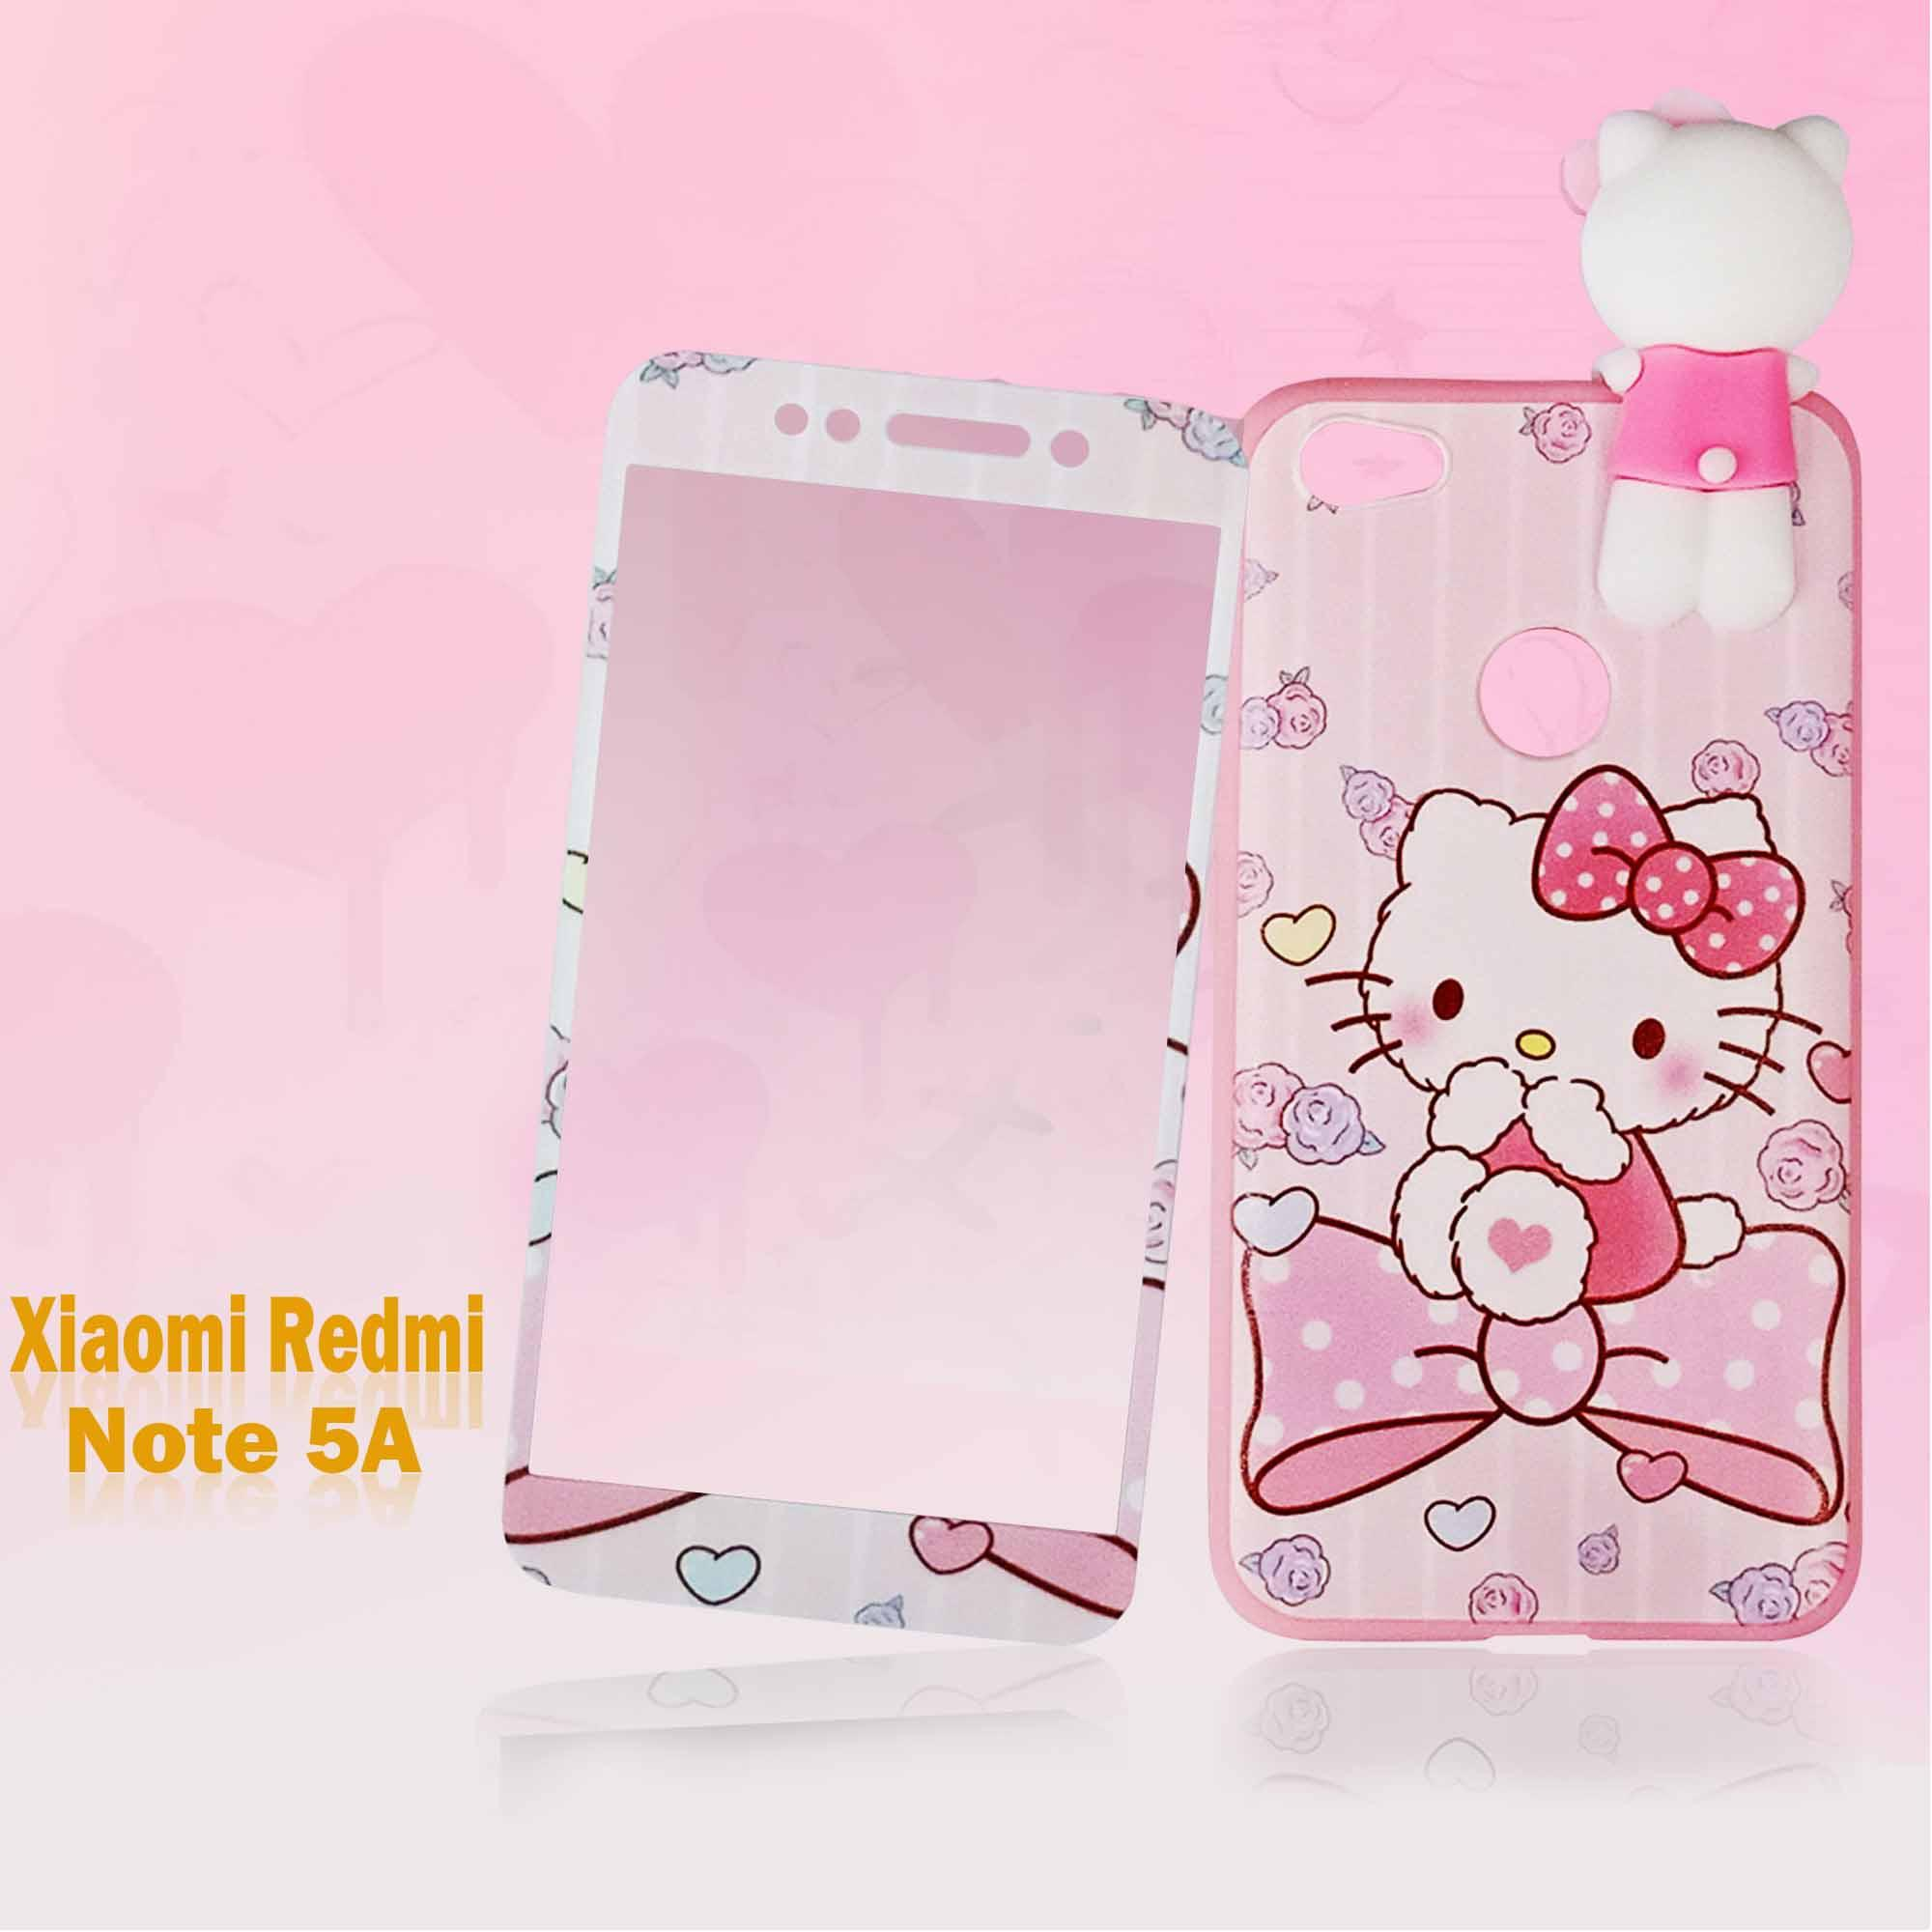 Marintri Case Xiaomi Redmi Note 5A With Tempered Glass Hello Kitty Manjat